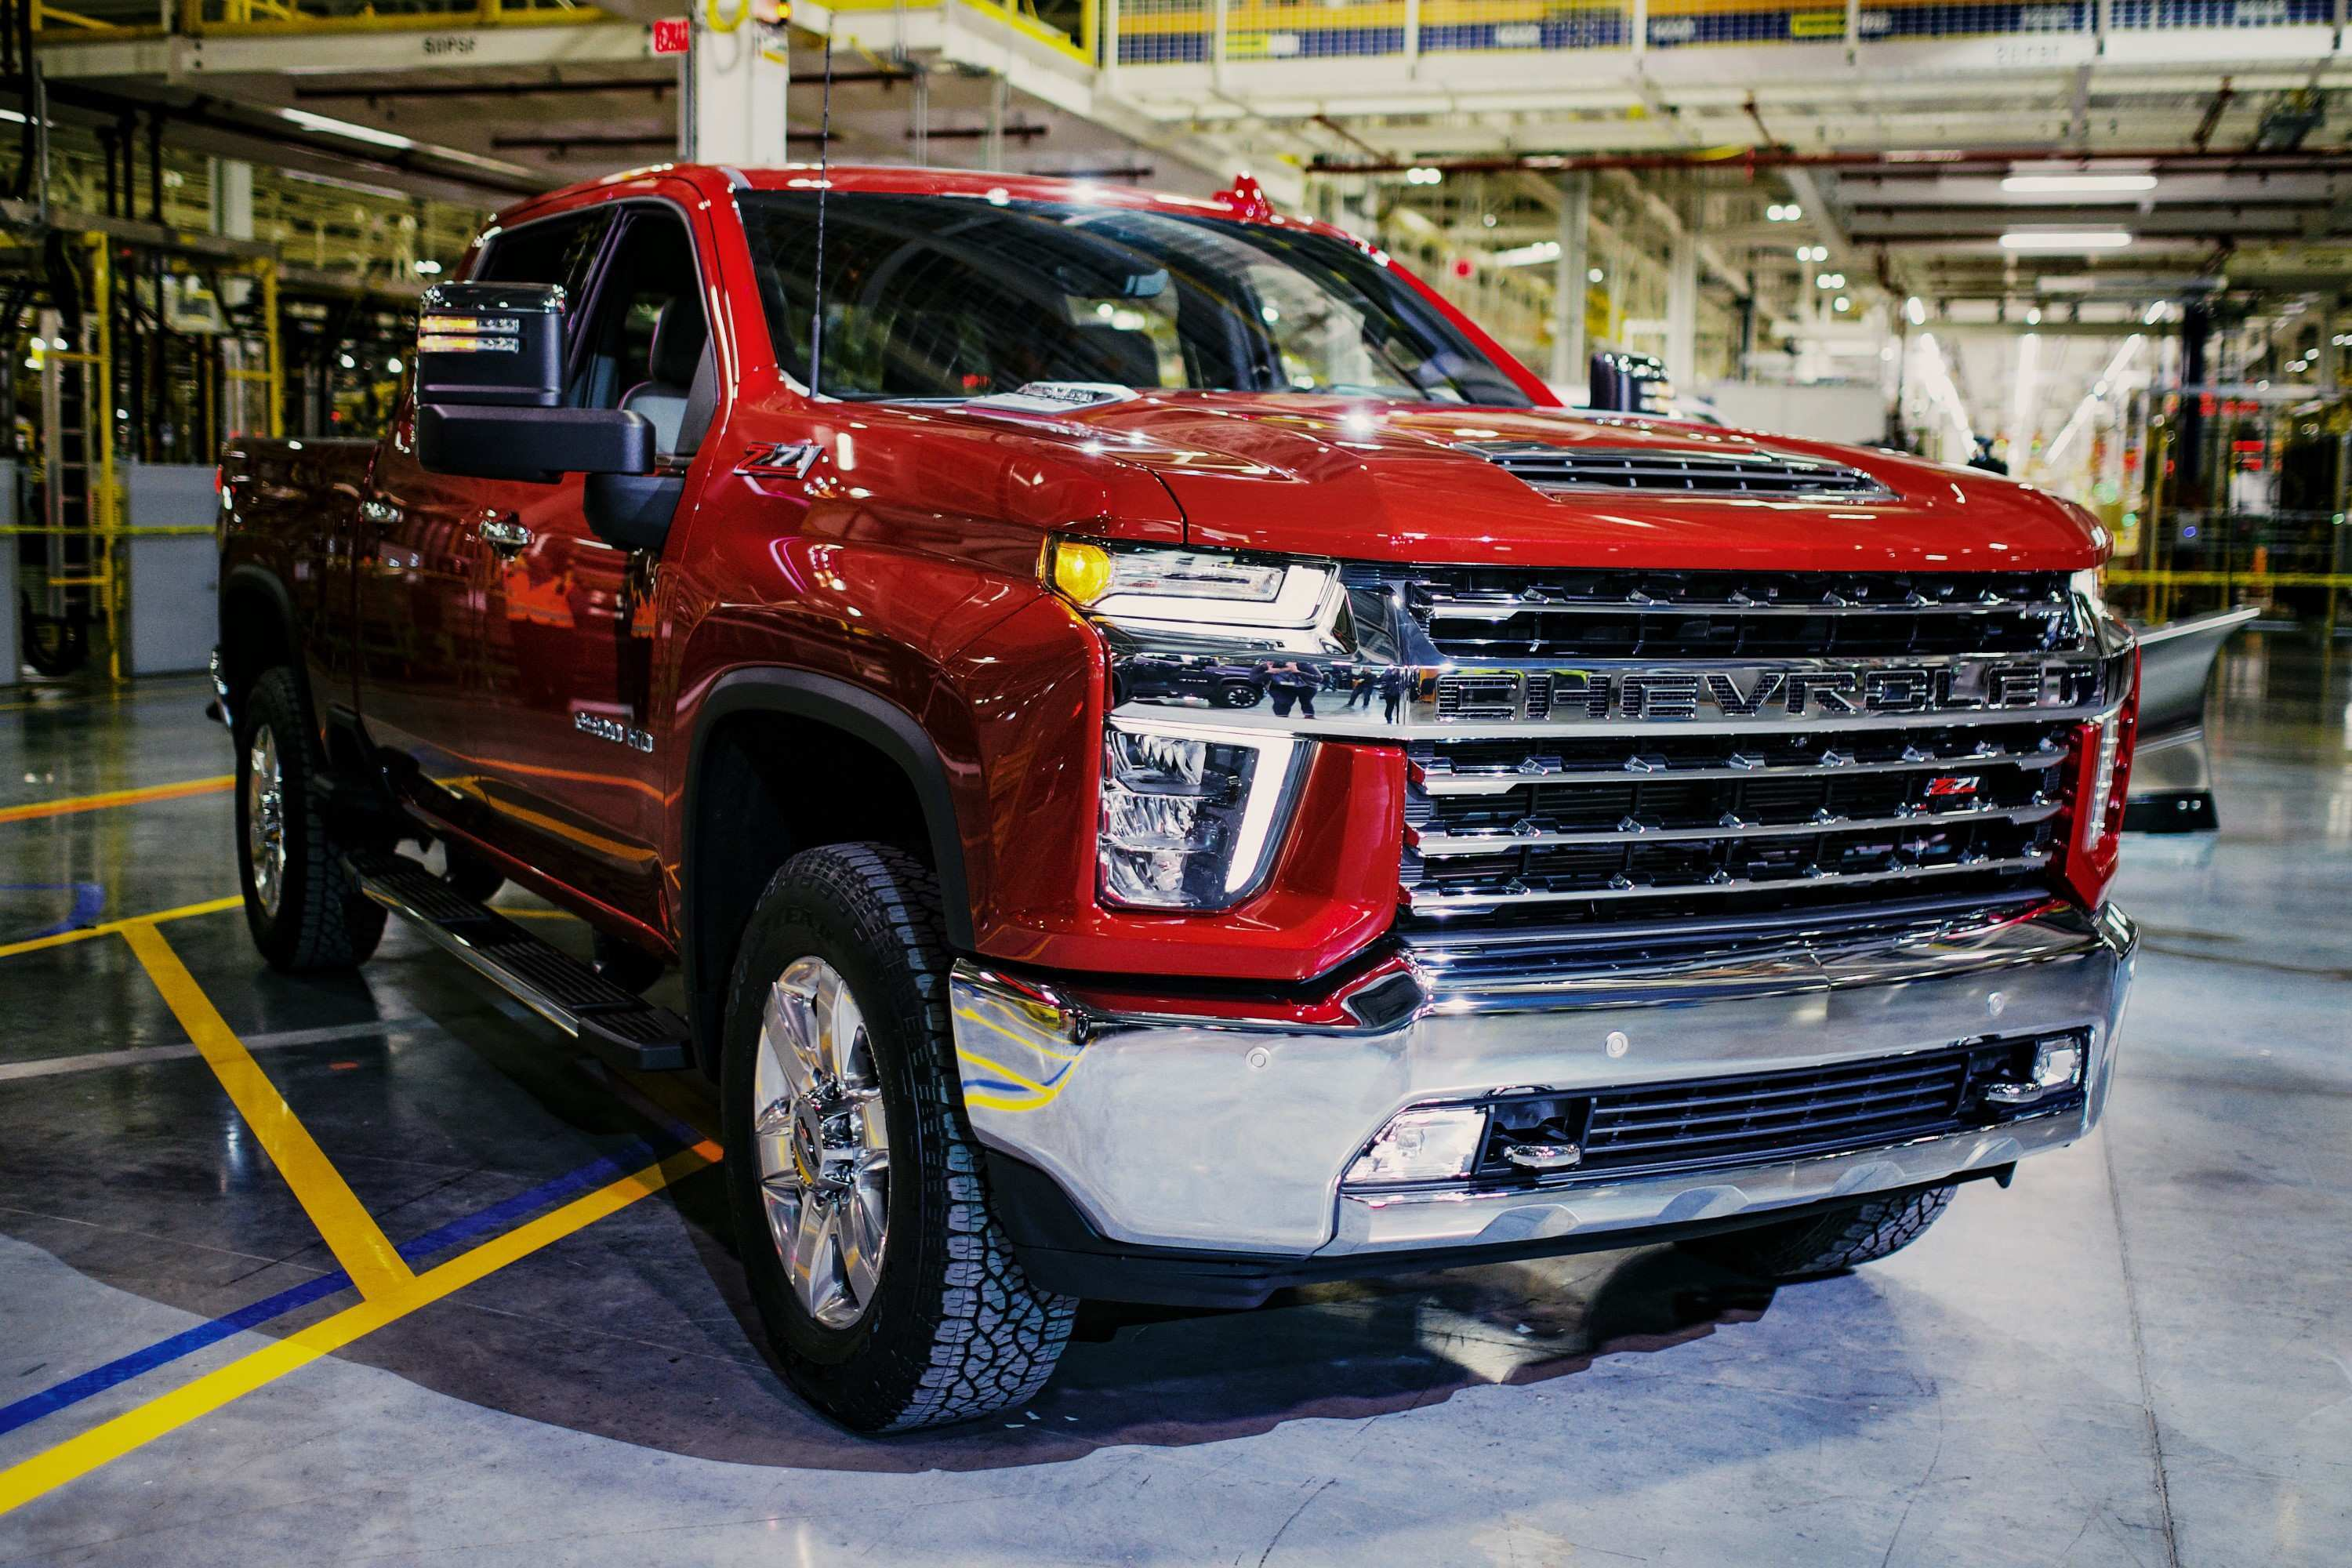 56 New 2020 Chevrolet Silverado Images Model